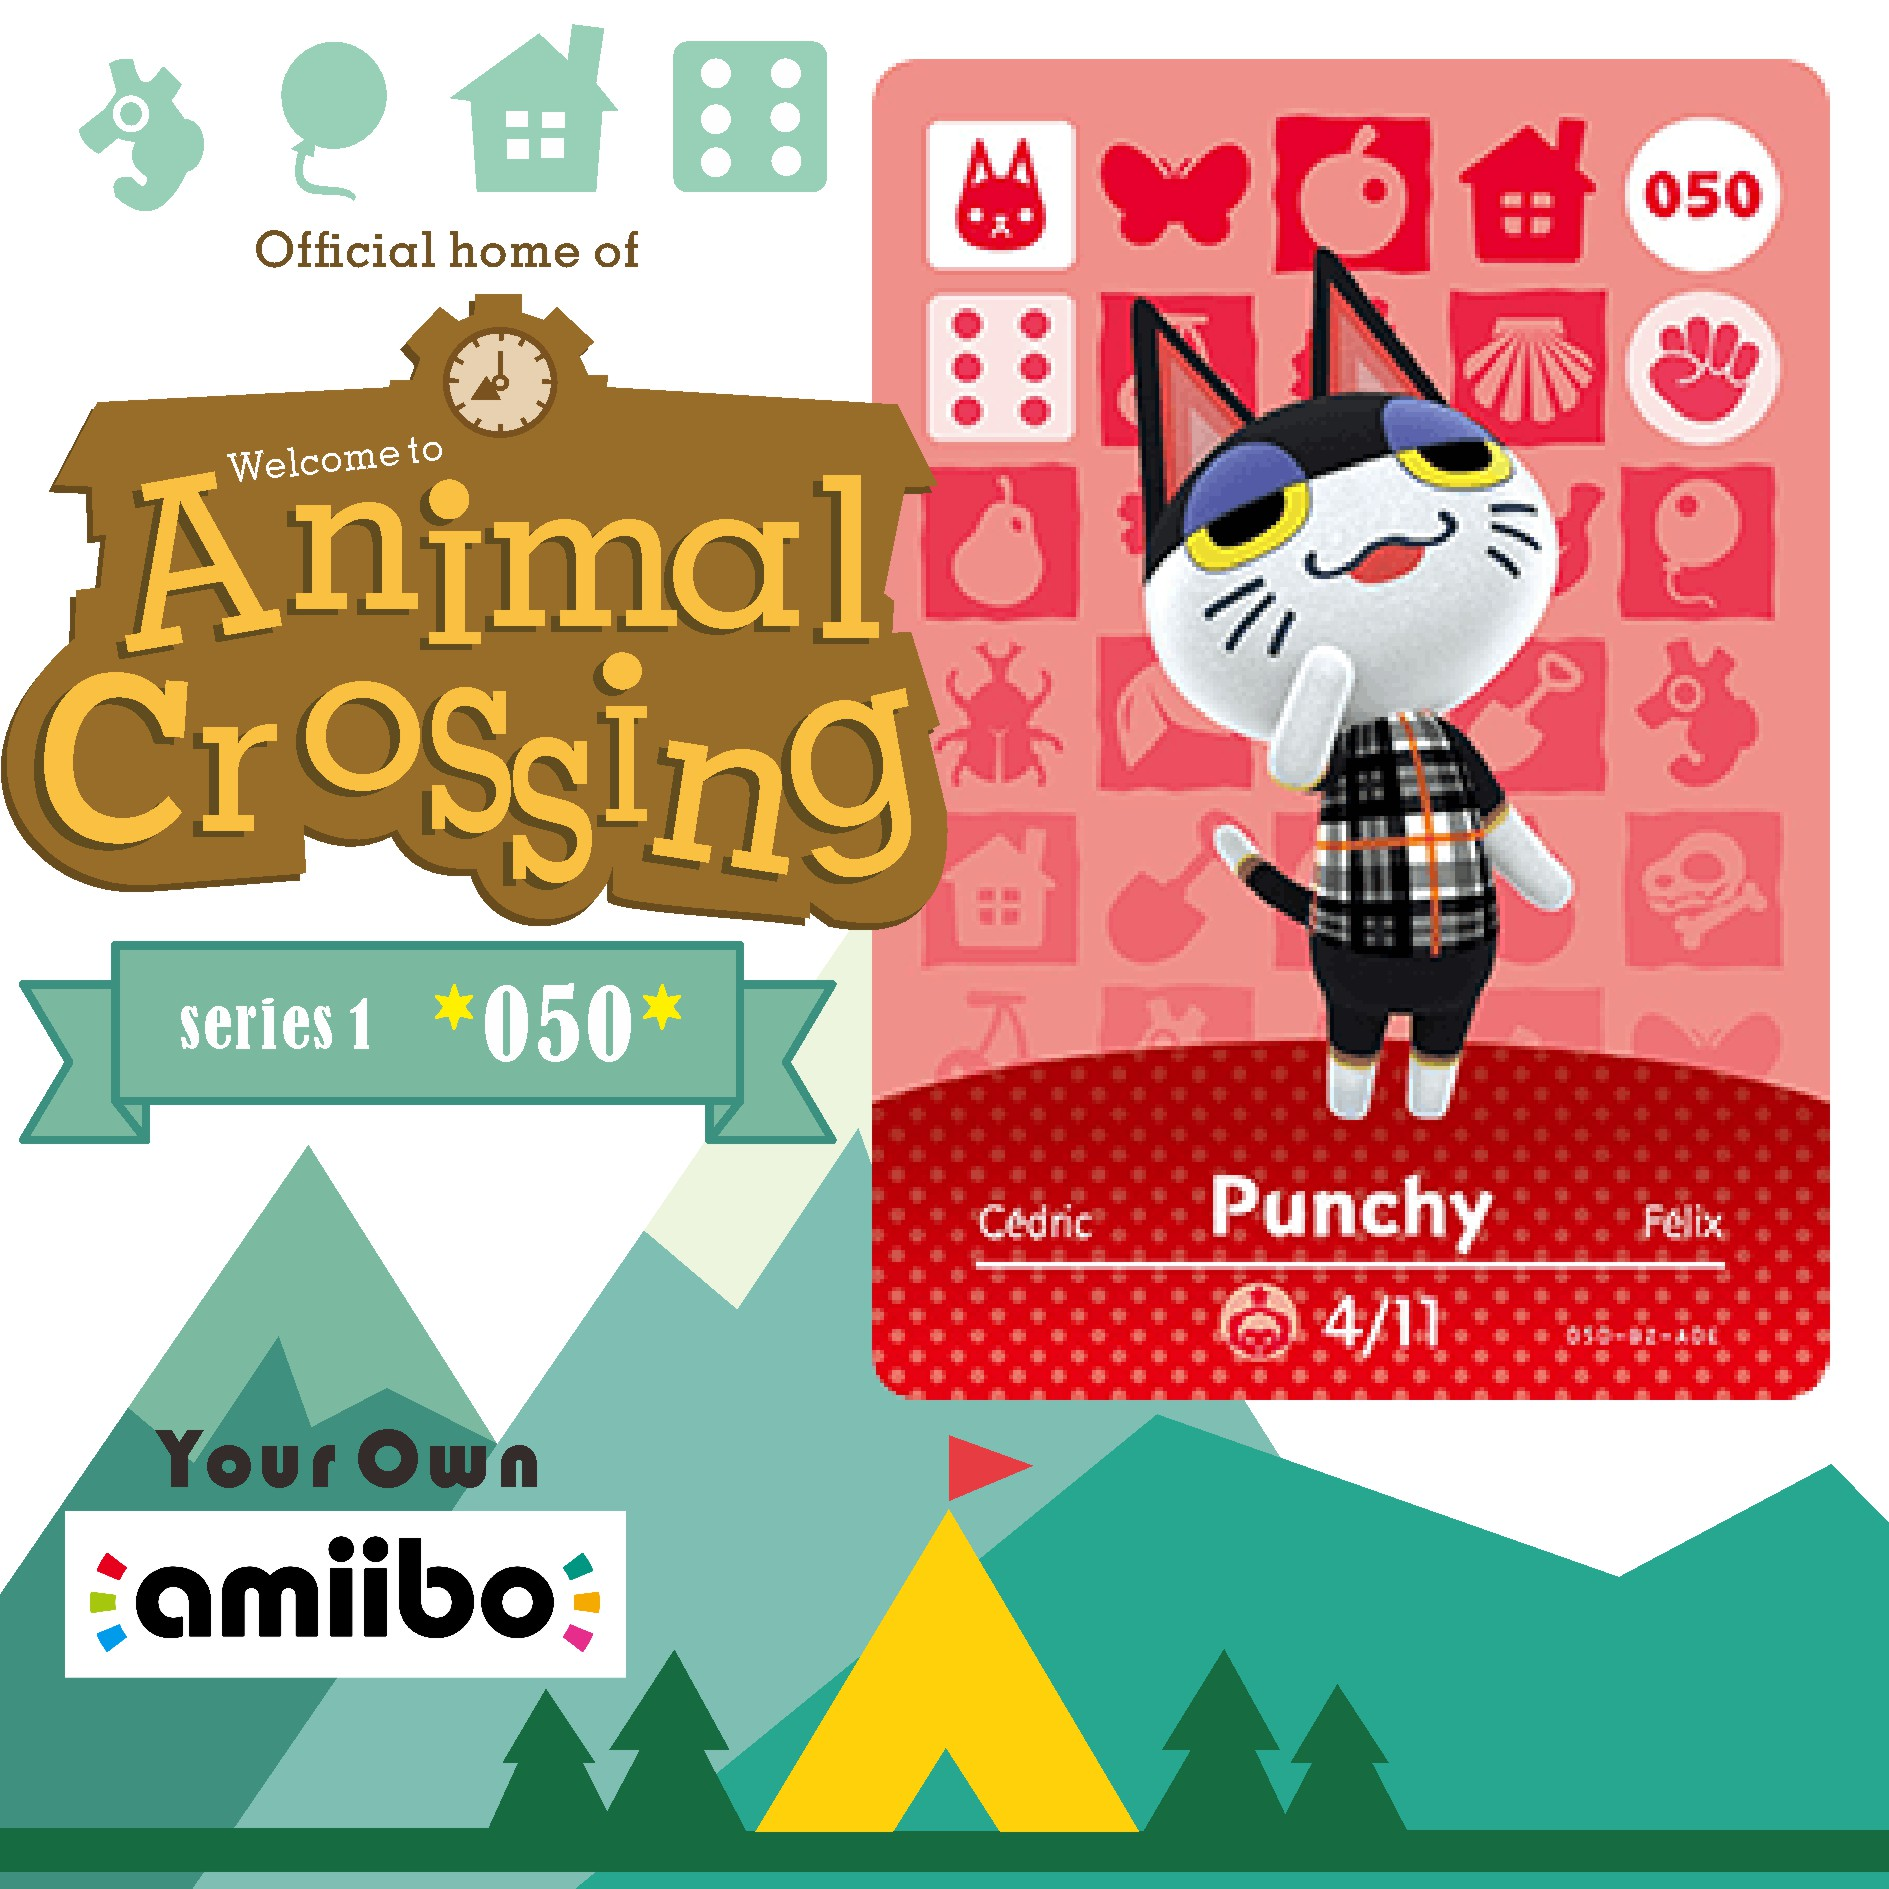 050 Punchy Amiibo Animal Crossing 50 Punchy Switch Rv Welcome Amiibo Card Nfc Figure Card Animal Crossing Amiboo Animal Crossing